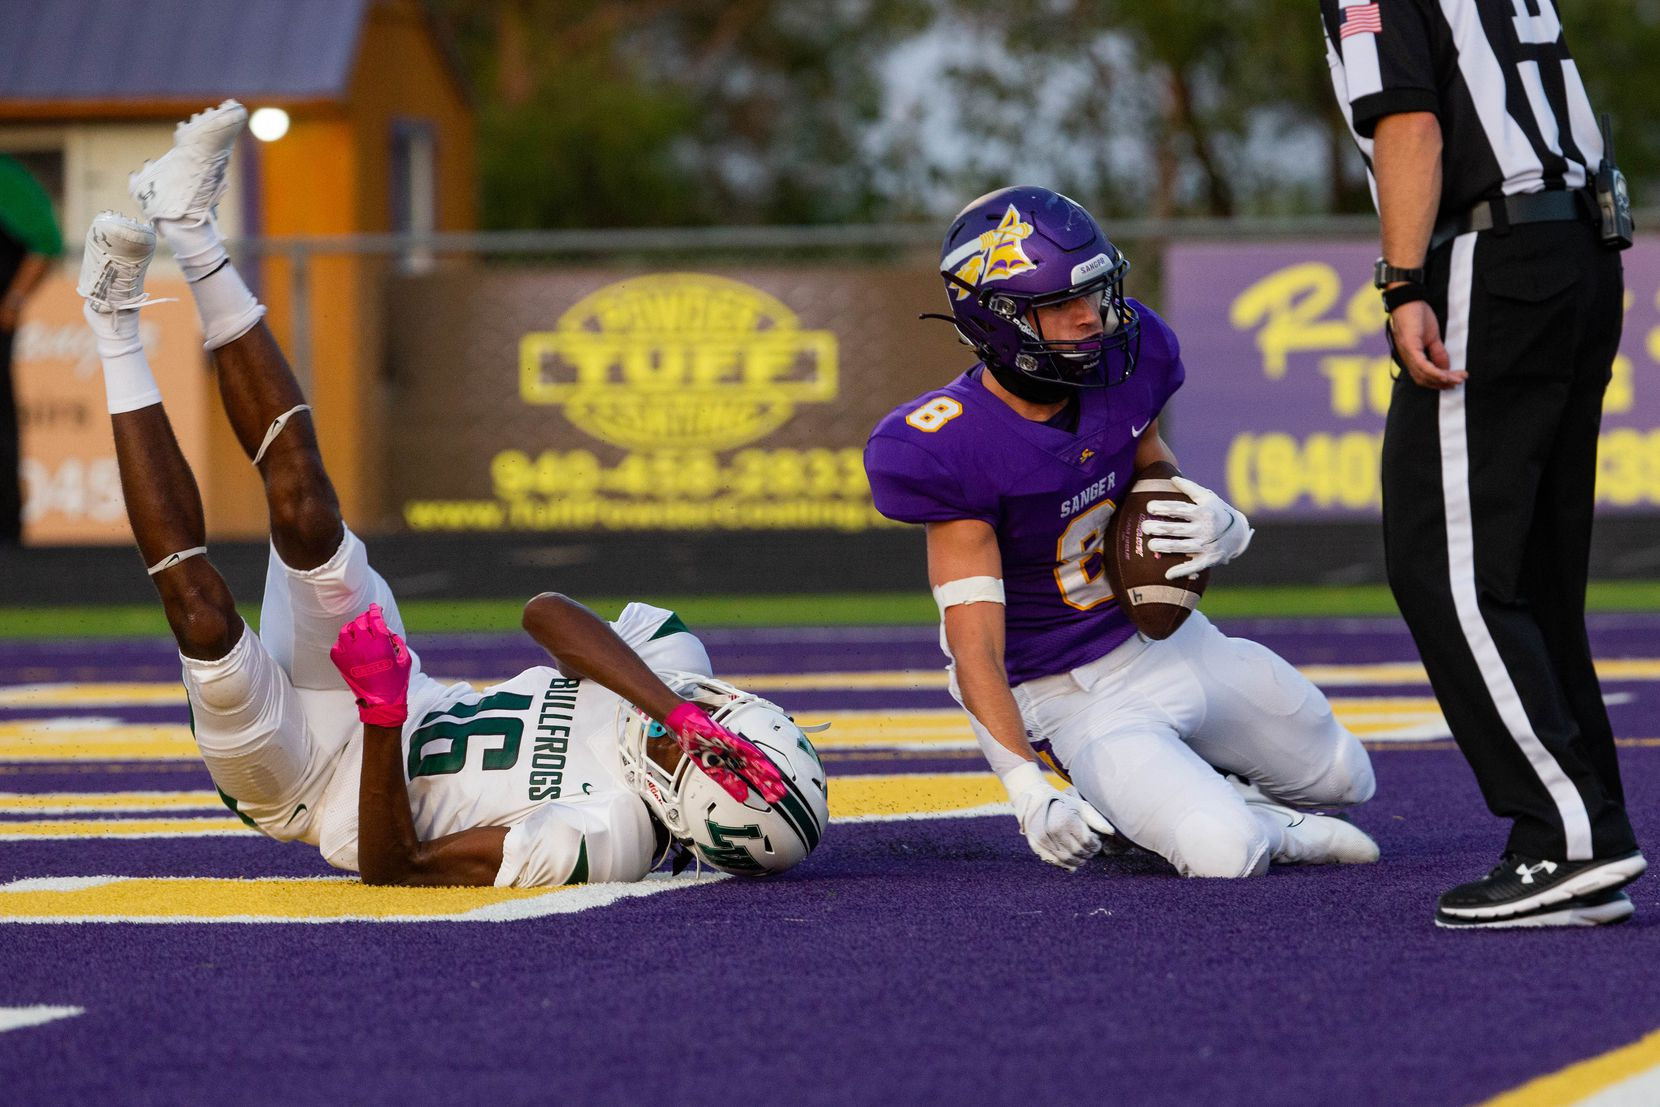 Sanger High School player Zach Shepard avoids being tackled by Lake Worth High School's Craig Williams for a touchdown during the first quarter of a game on Sept. 4, 2020 in Sanger.  Sanger leads 26-14 at halftime. (Juan Figueroa/ The Dallas Morning News)